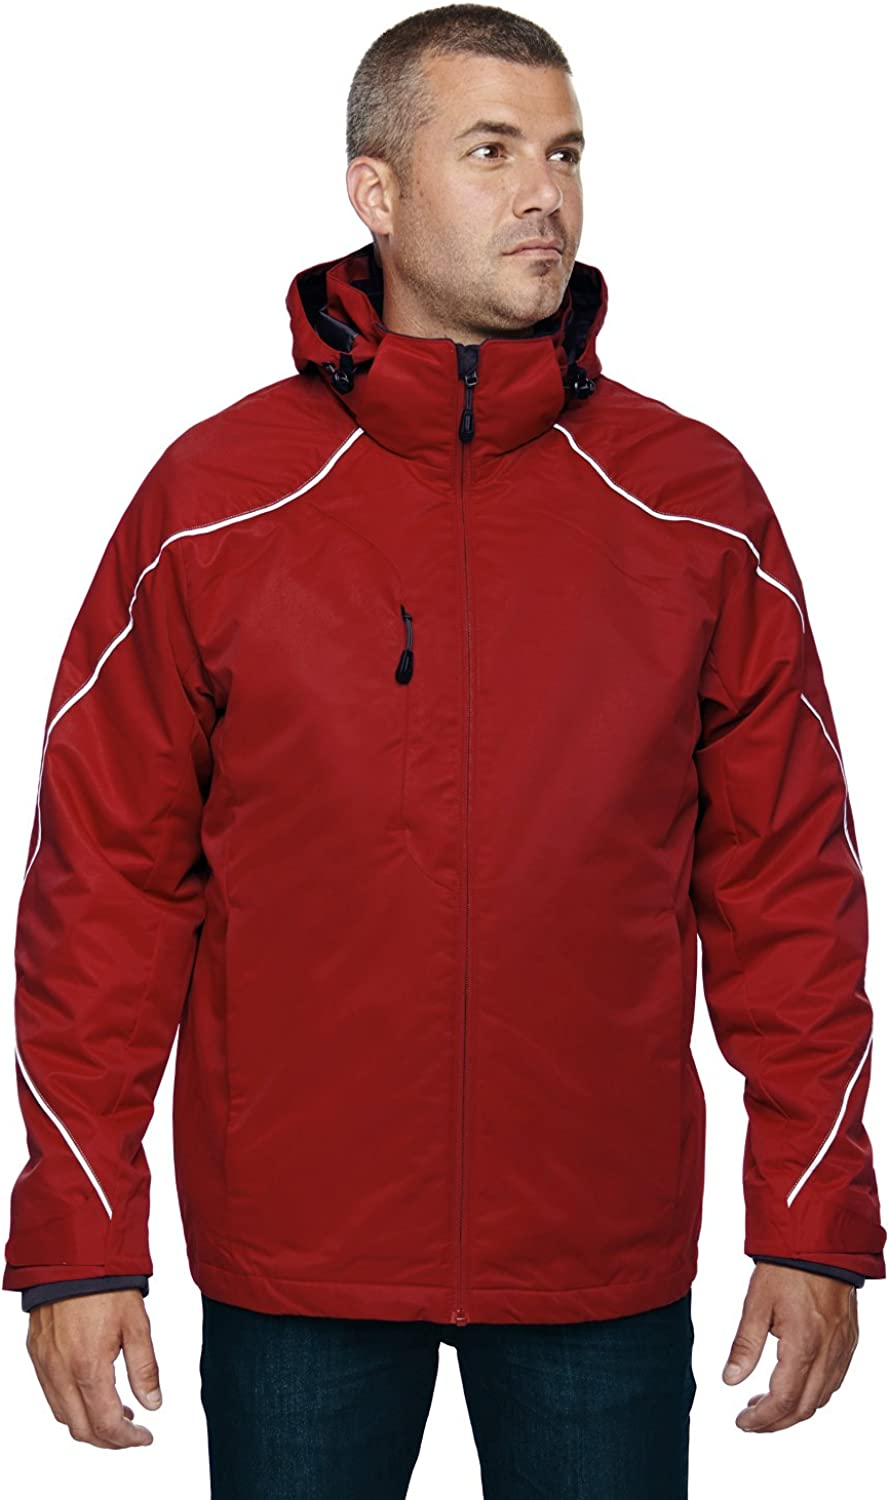 Men's Tall Angle 3-in-1 Jacket with Bonded Fleece Liner CLASSIC rot 850 2XT